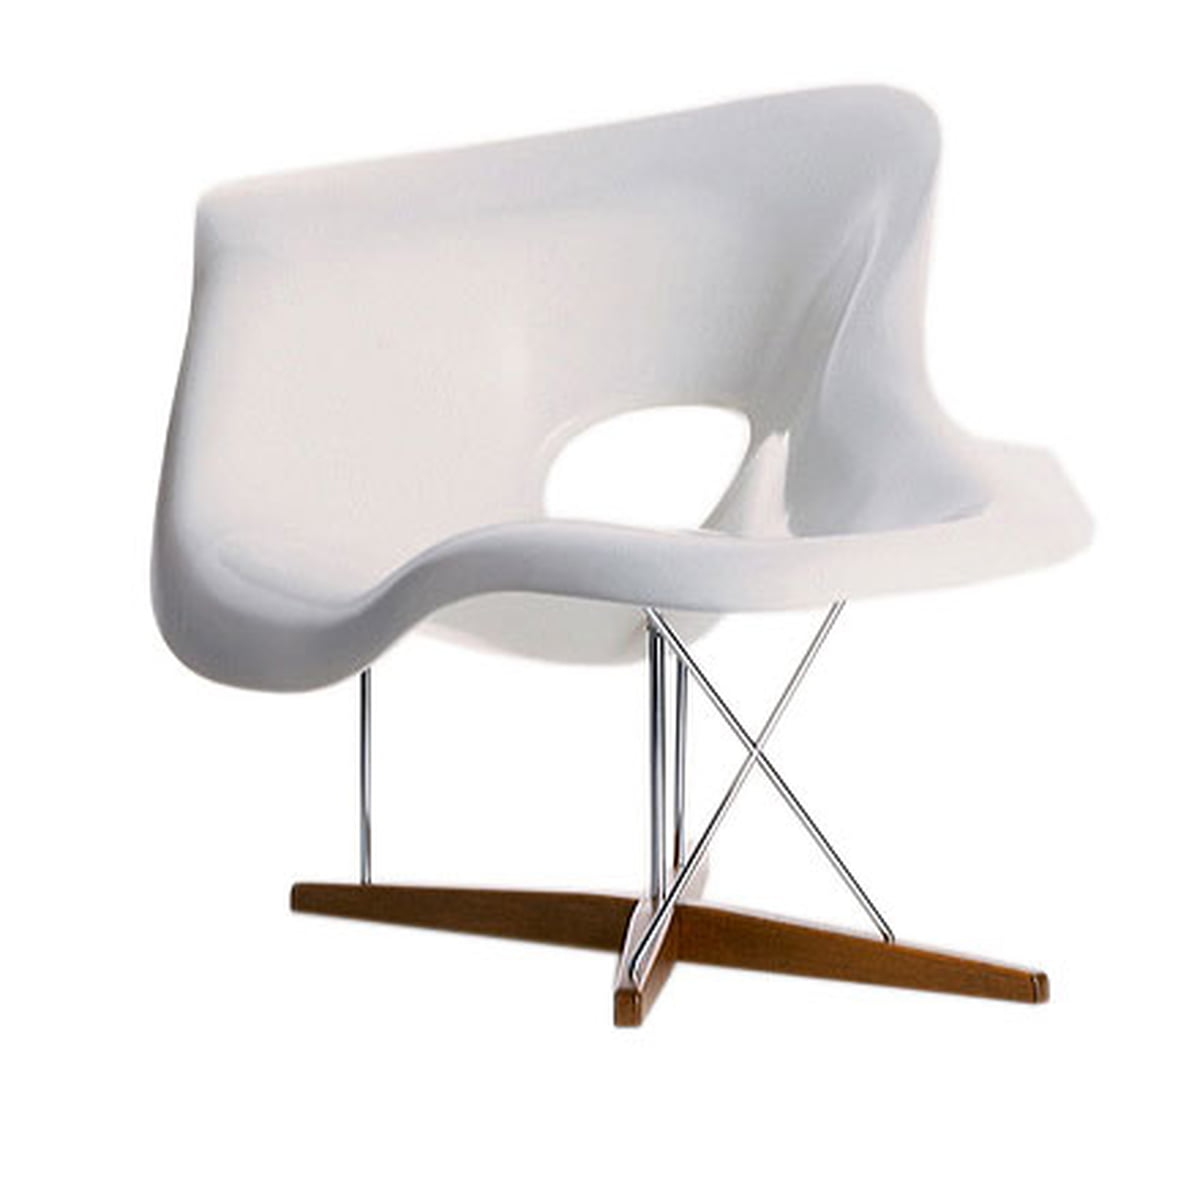 La chaise vitra shop for Chaise rar eames vitra